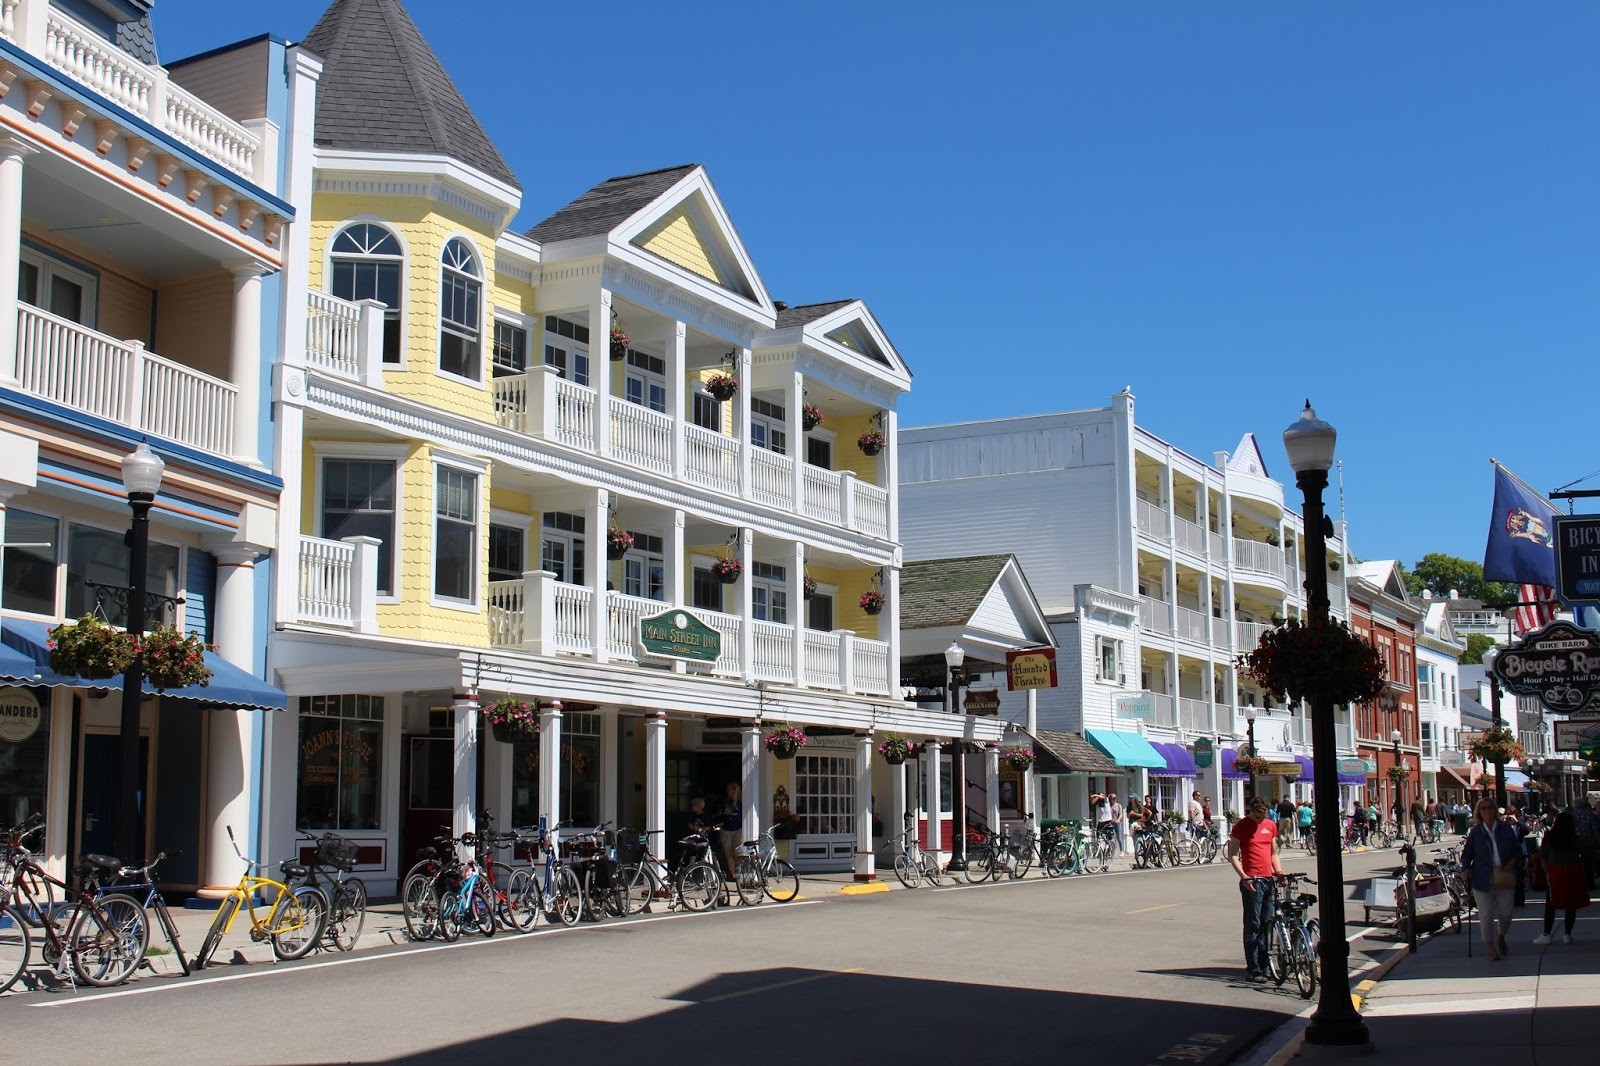 mackinac island gay singles Looking for a mackinac island hotel 2-star hotels from $101, 3 stars from $122 and 4 stars+ from  stay at harbour view inn from $147/night, lake view hotel from $155/night, chippewa hotel waterfront from $463/night and more.